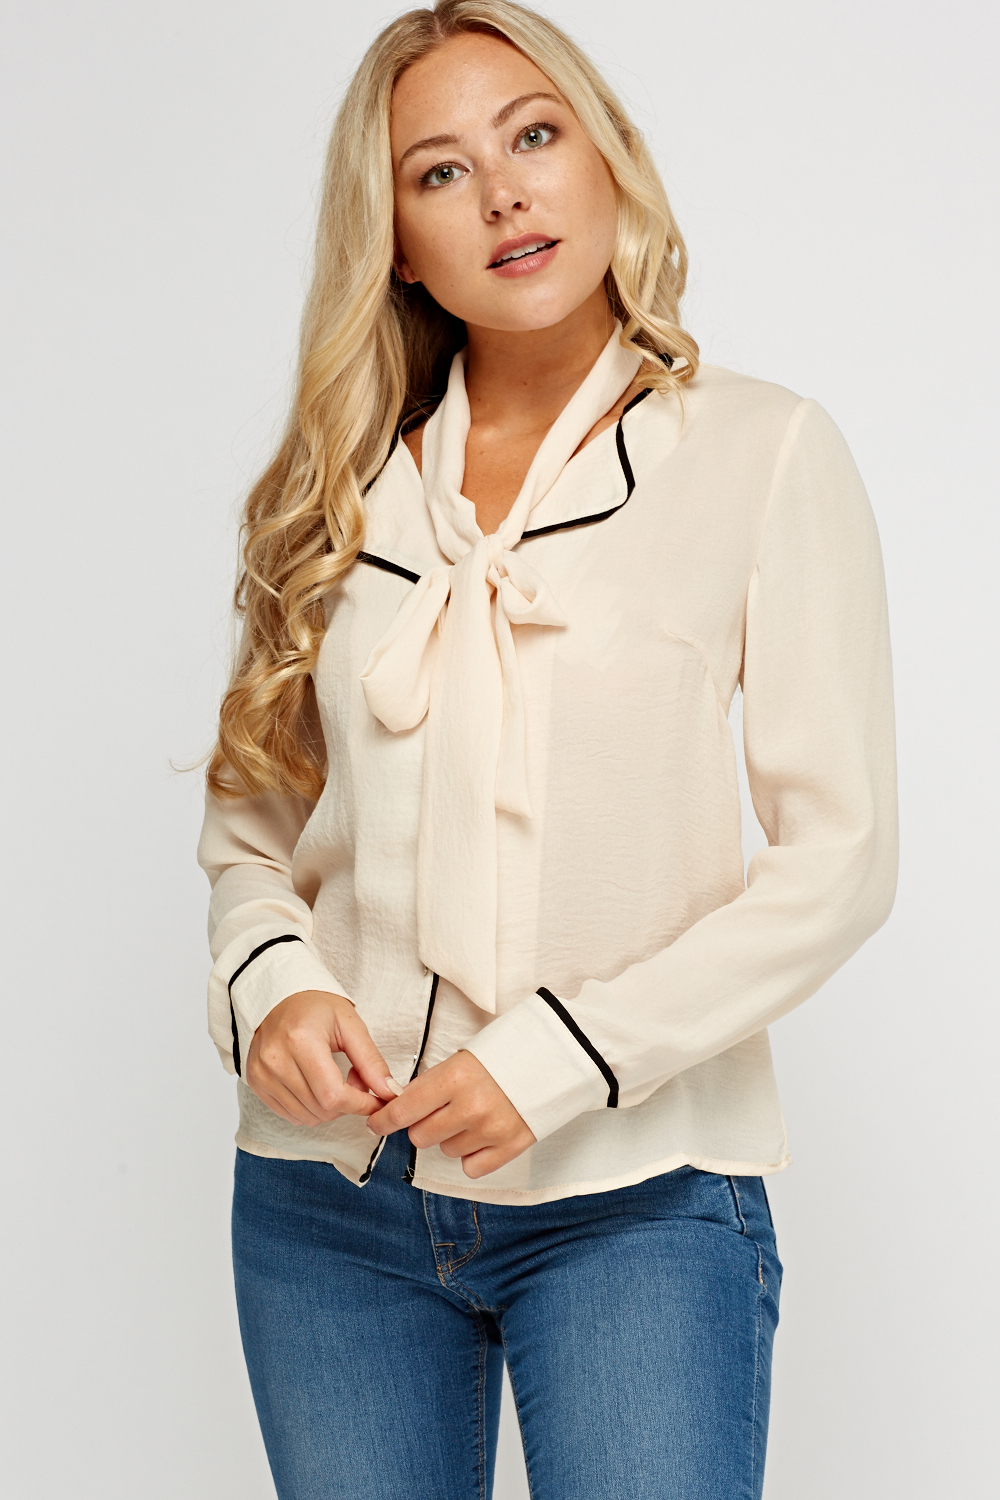 7fe3418db0 Contrast Trim Button Up Blouse - Just £5